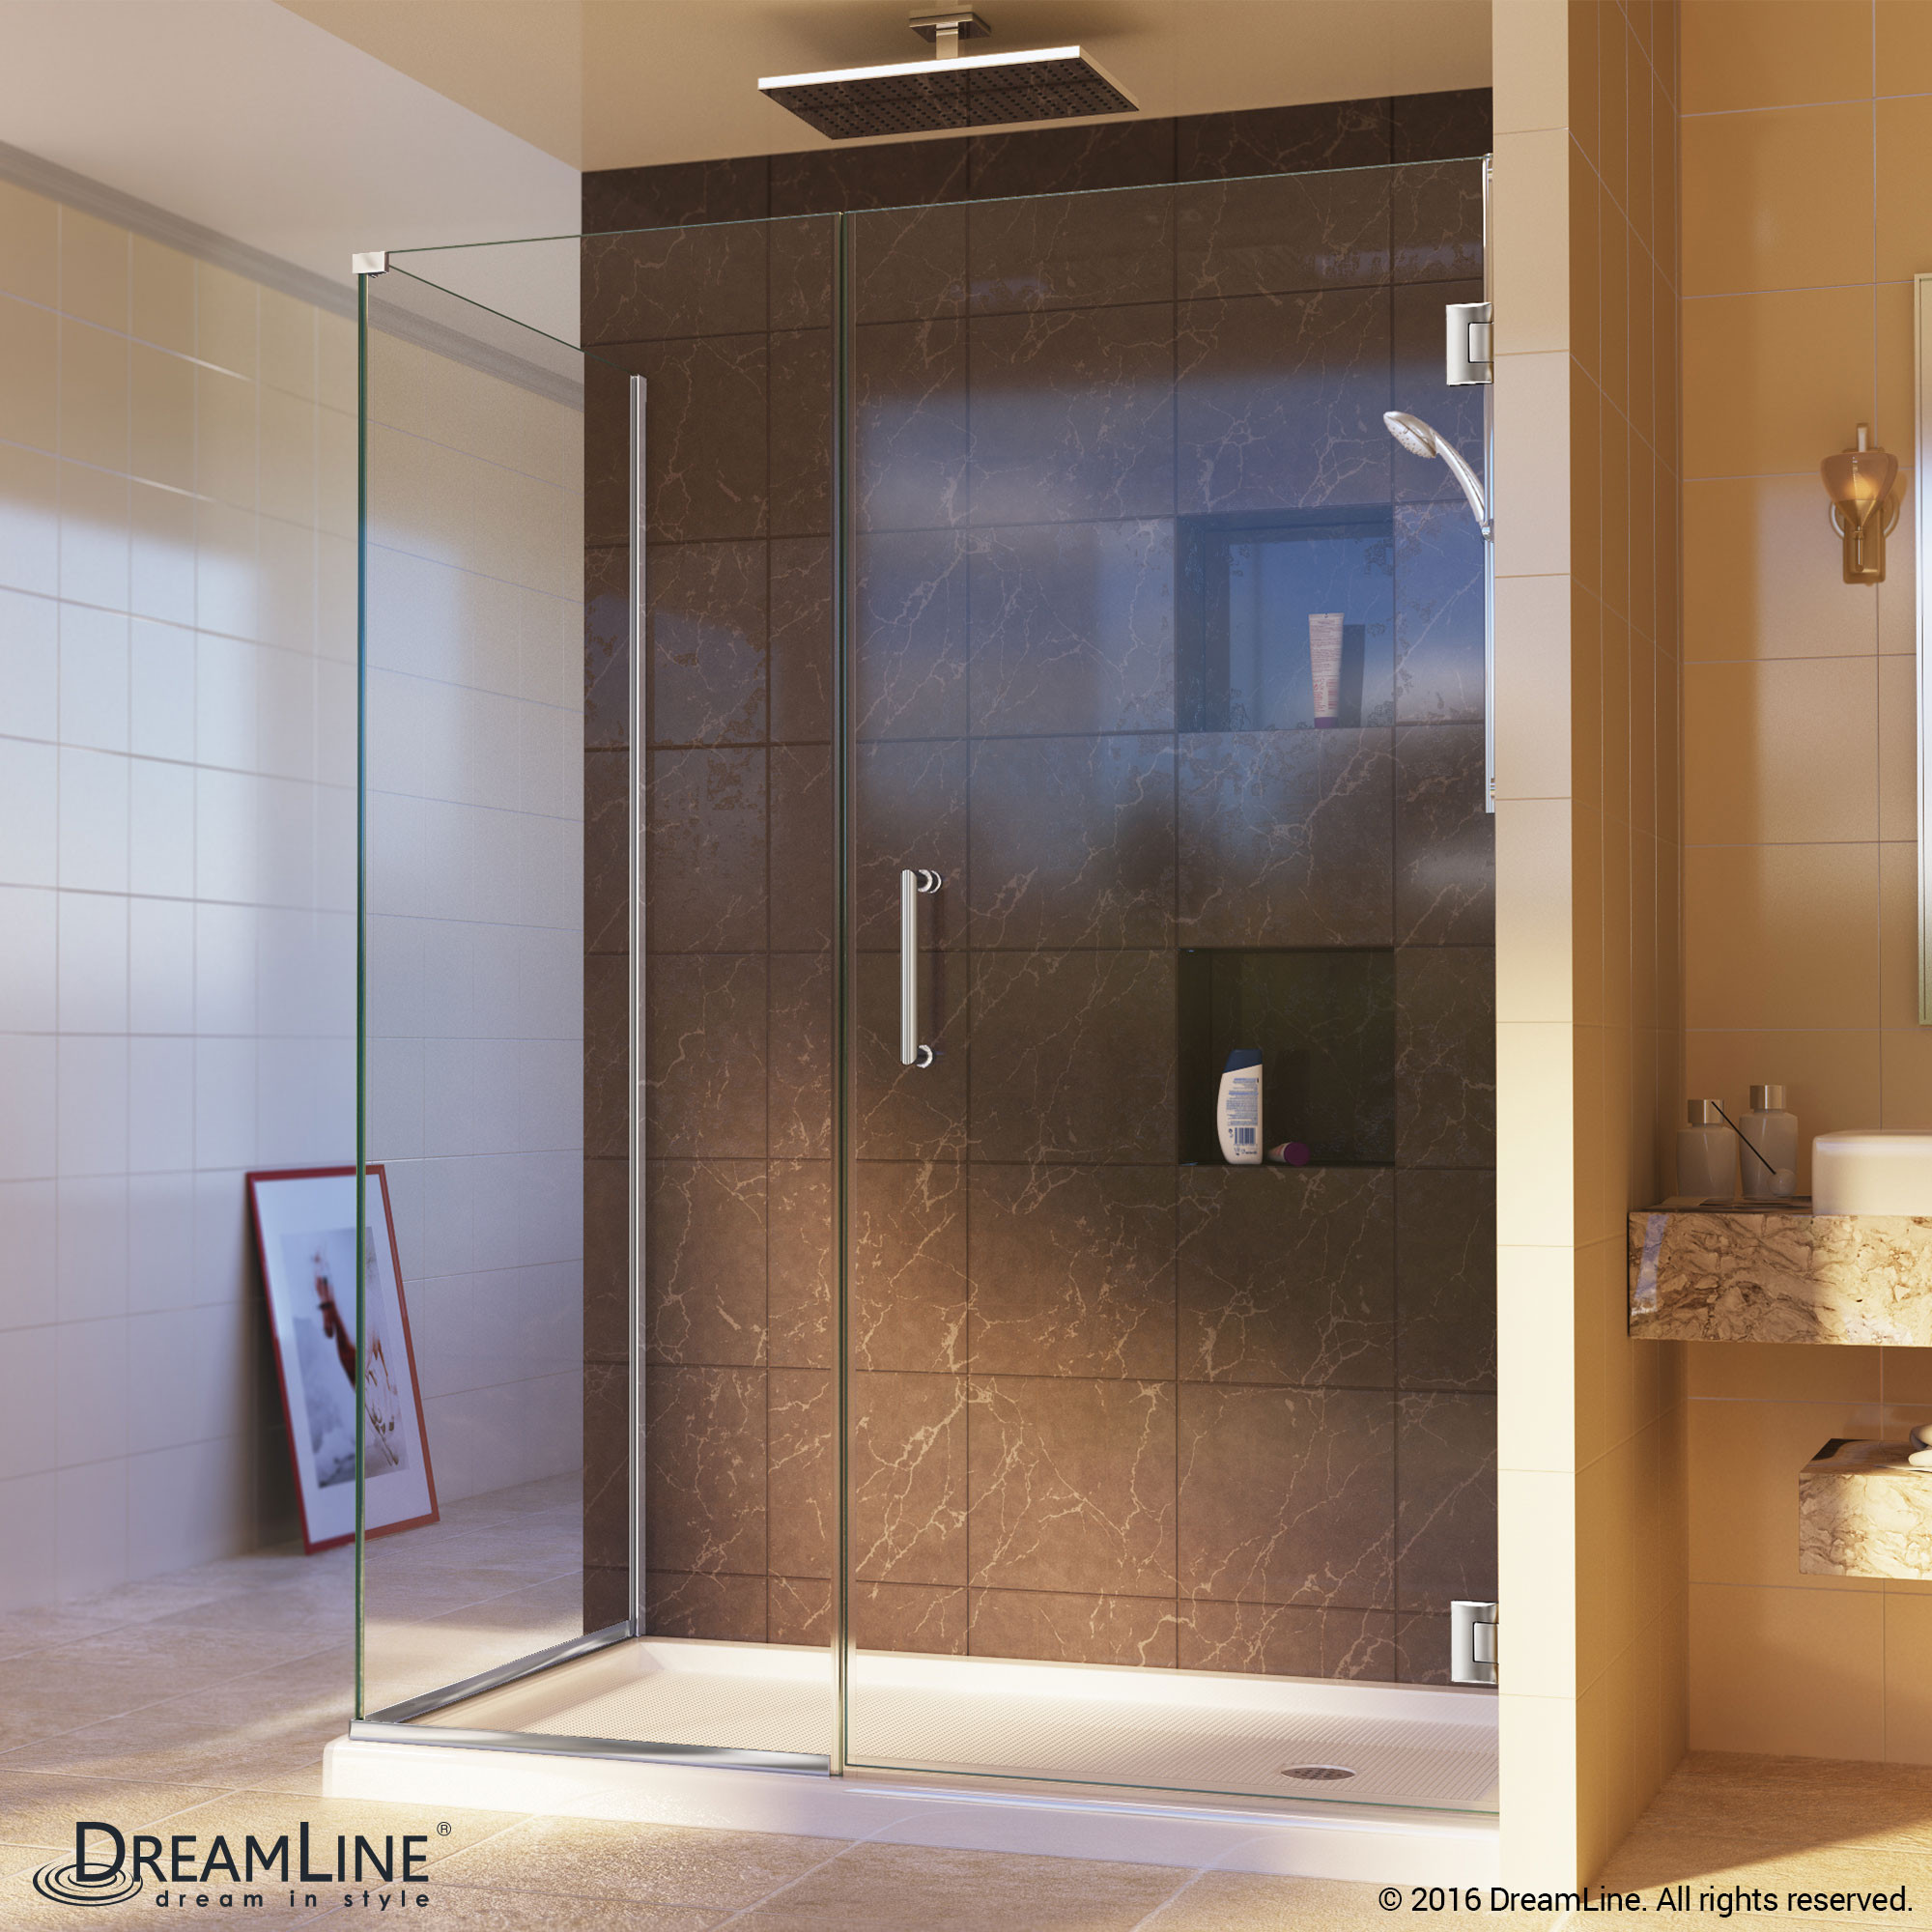 DreamLine SHEN-24470300-01 Unidoor Plus Hinged Shower Enclosure In Chrome Finish Hardware